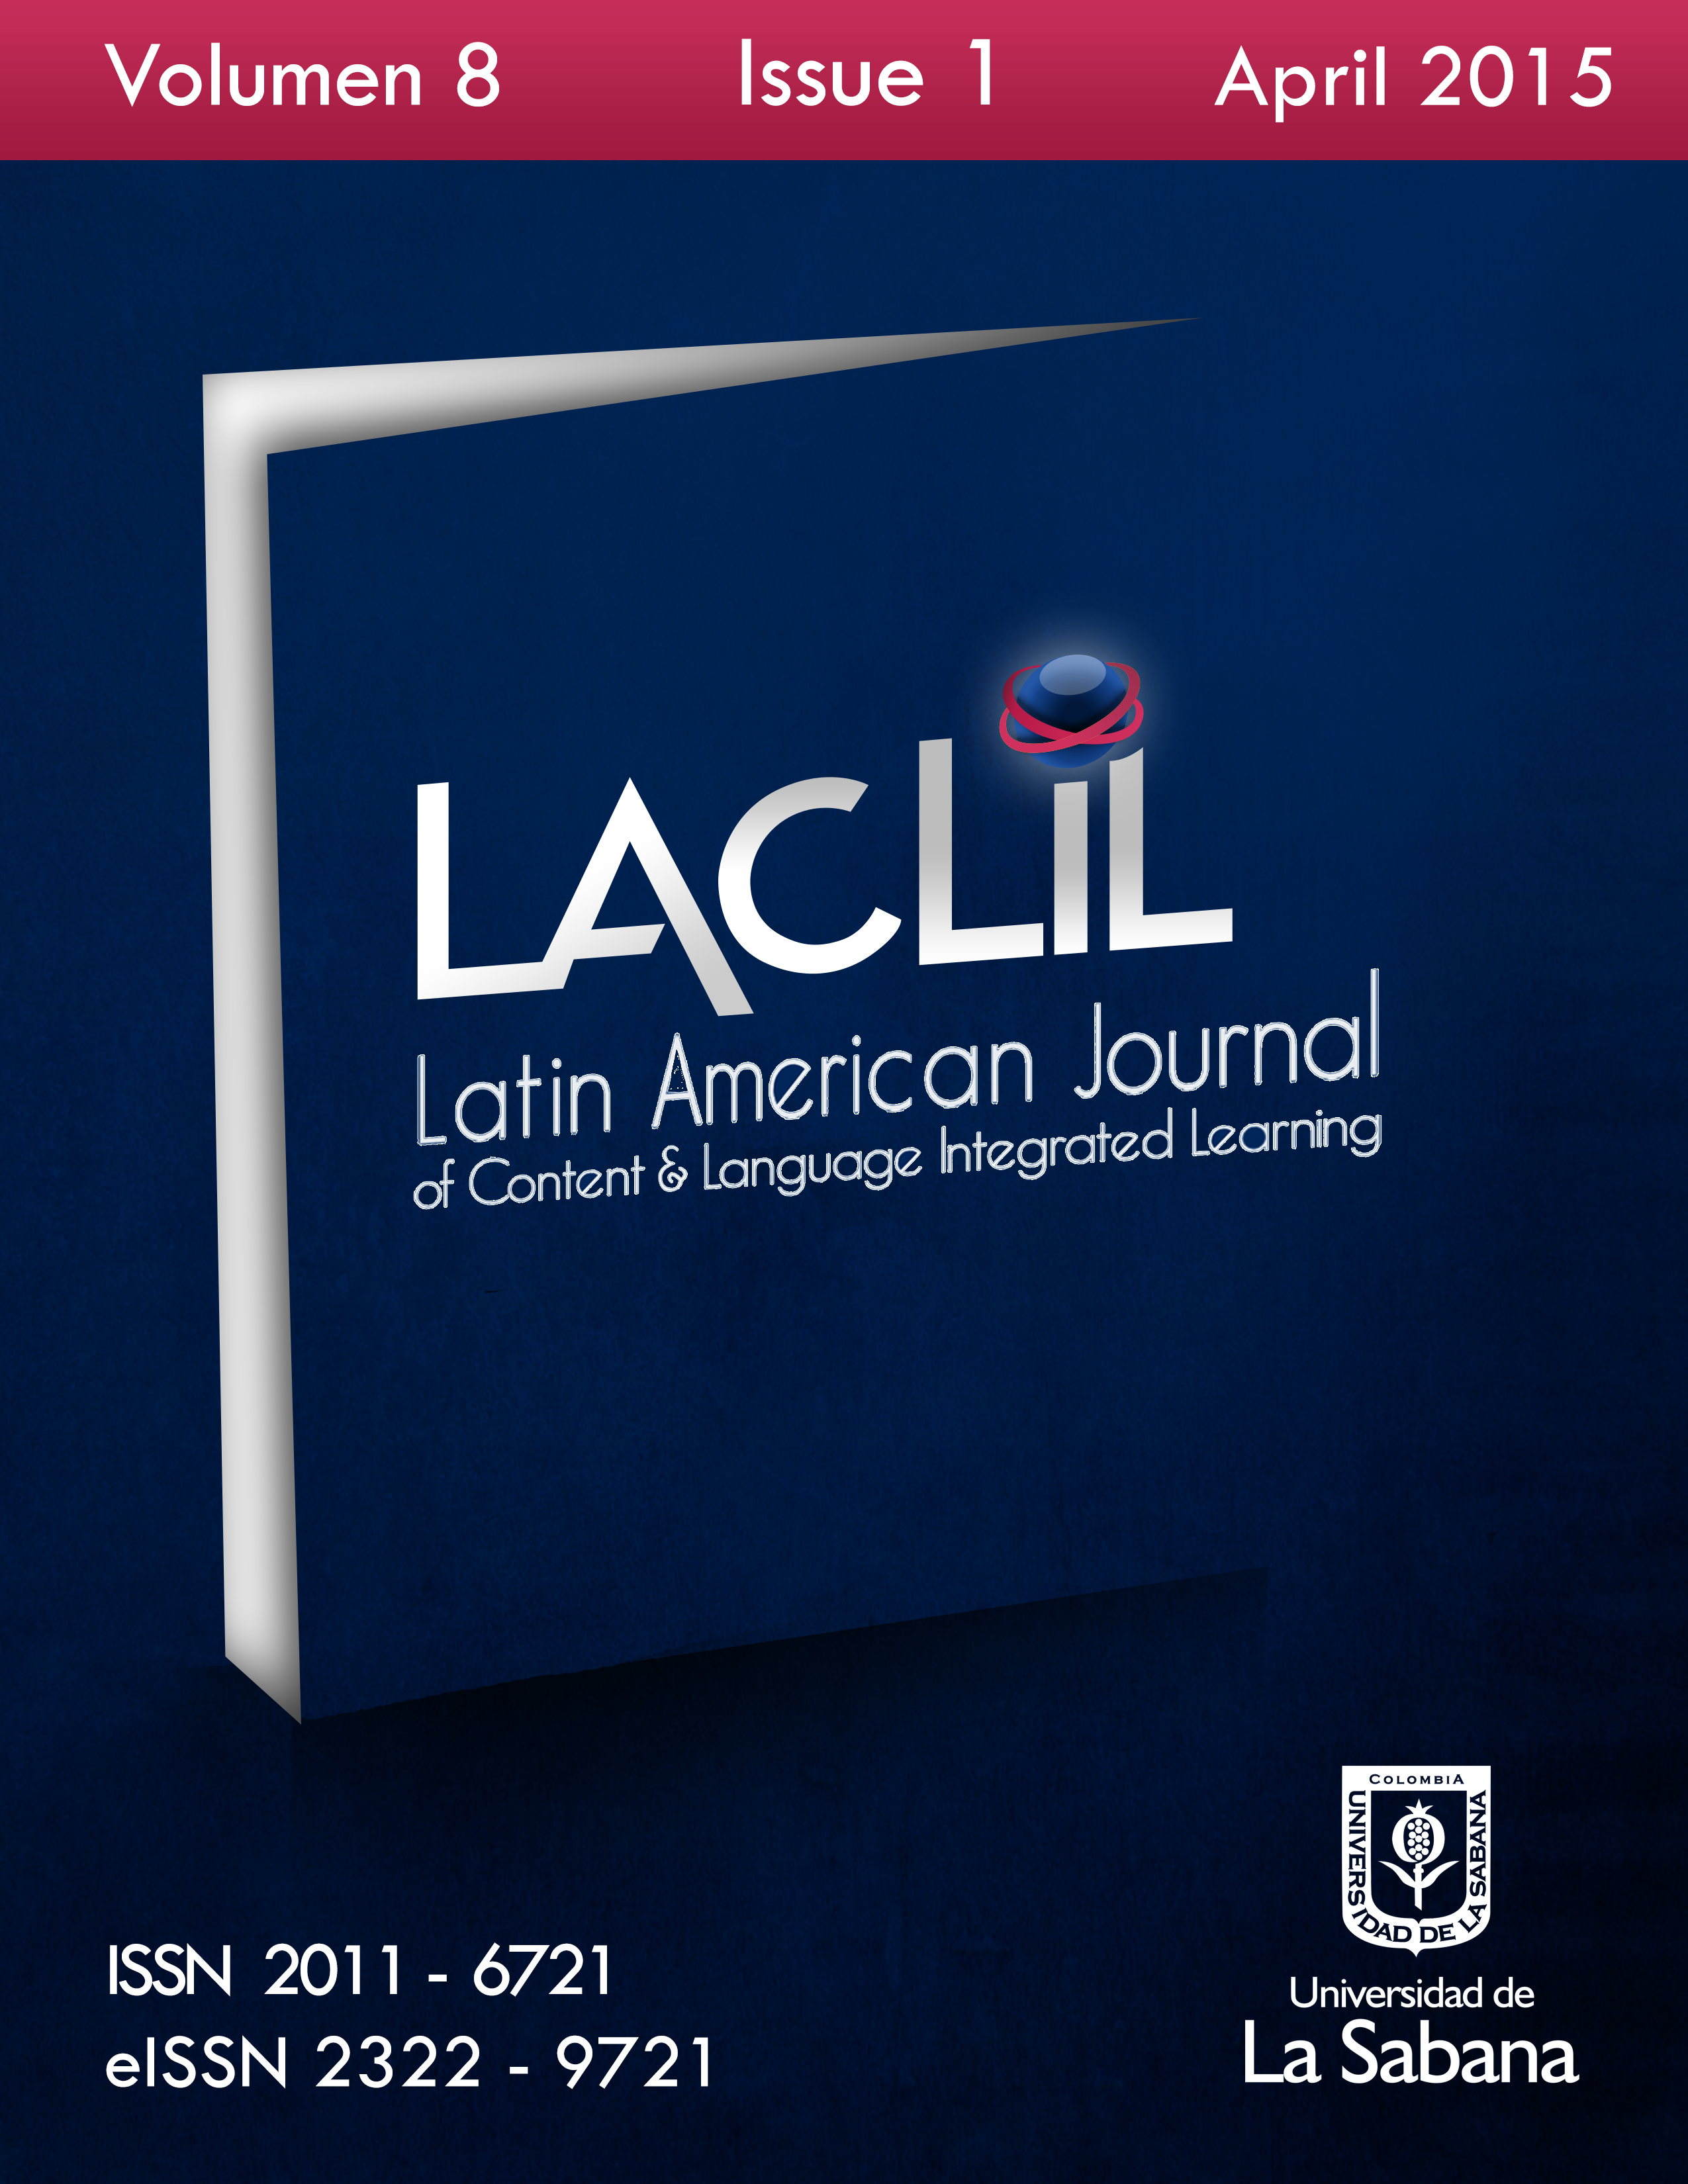 LACLIL Volume 8, No. 1 (April 2015)